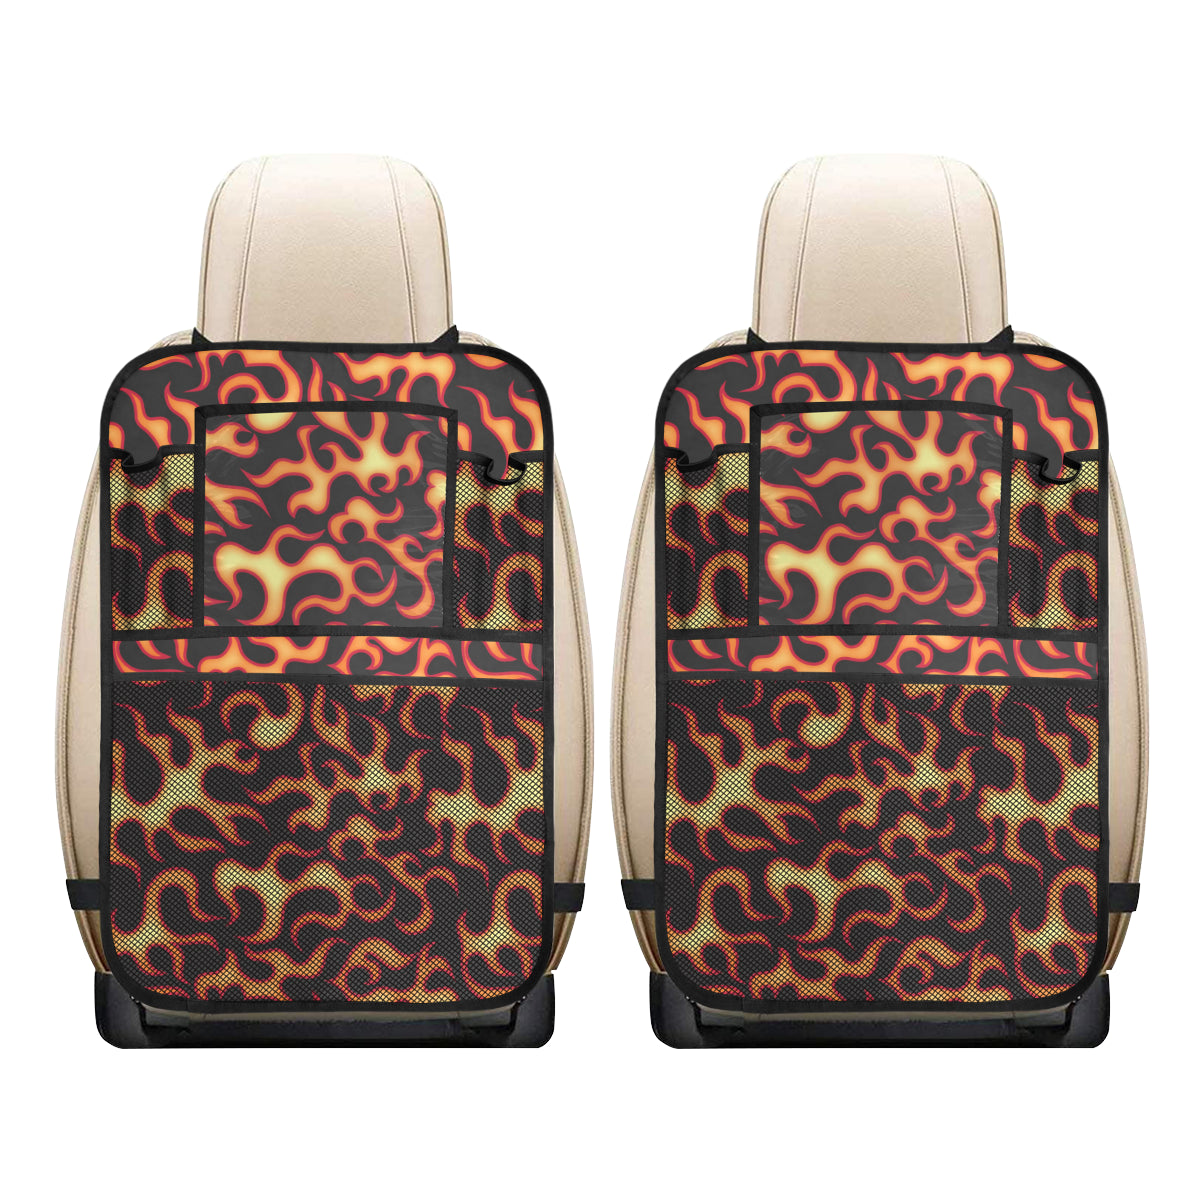 Flame Fire Themed Print Car Back Seat Organizer